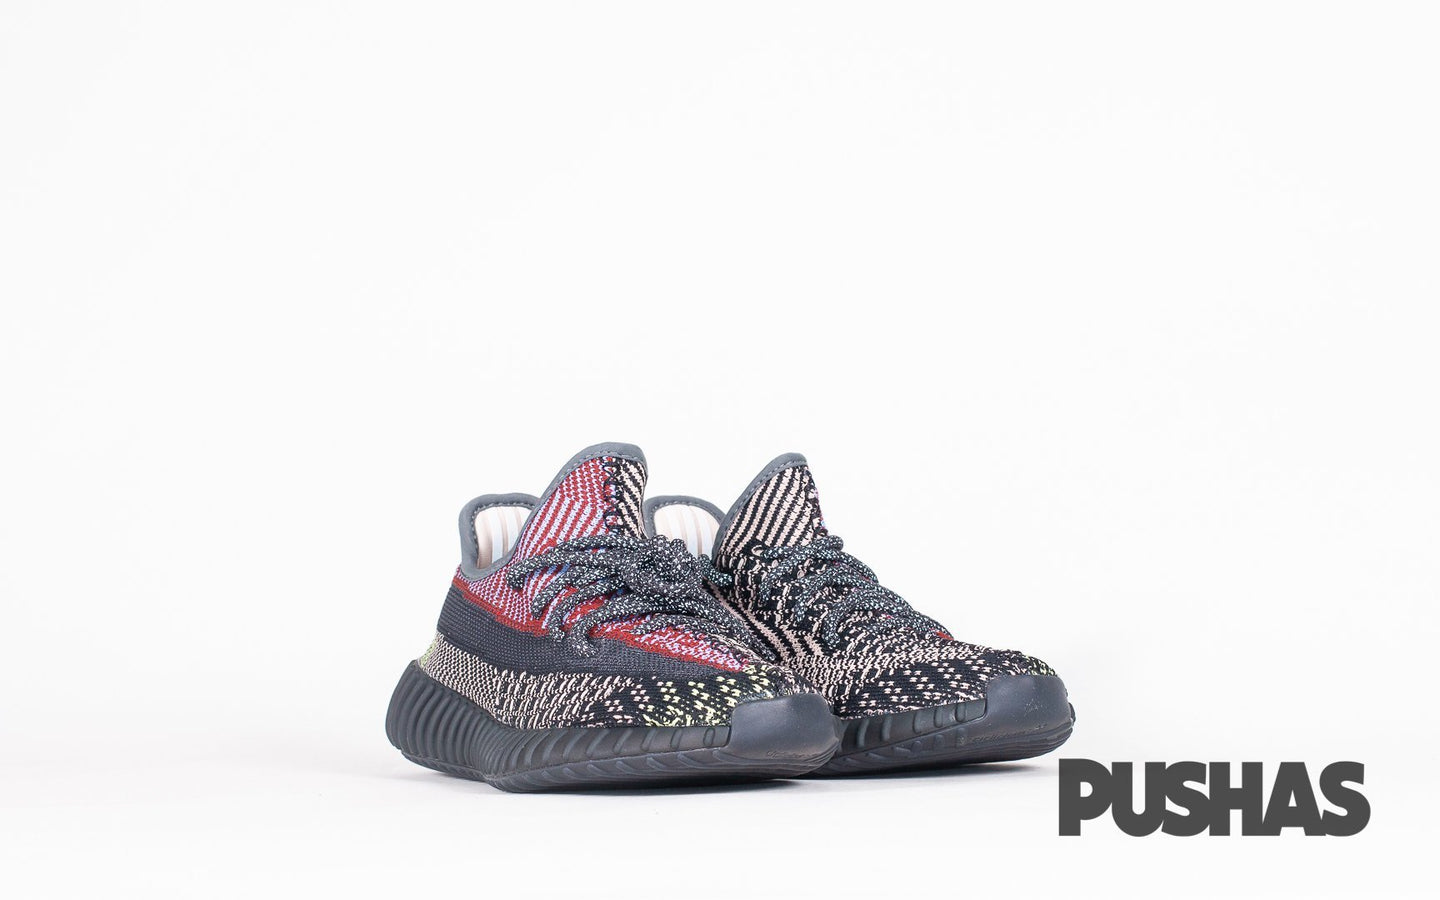 pushas-Adidas-Yeezy-Boost-350-V2-Yecheil-Non-Reflective